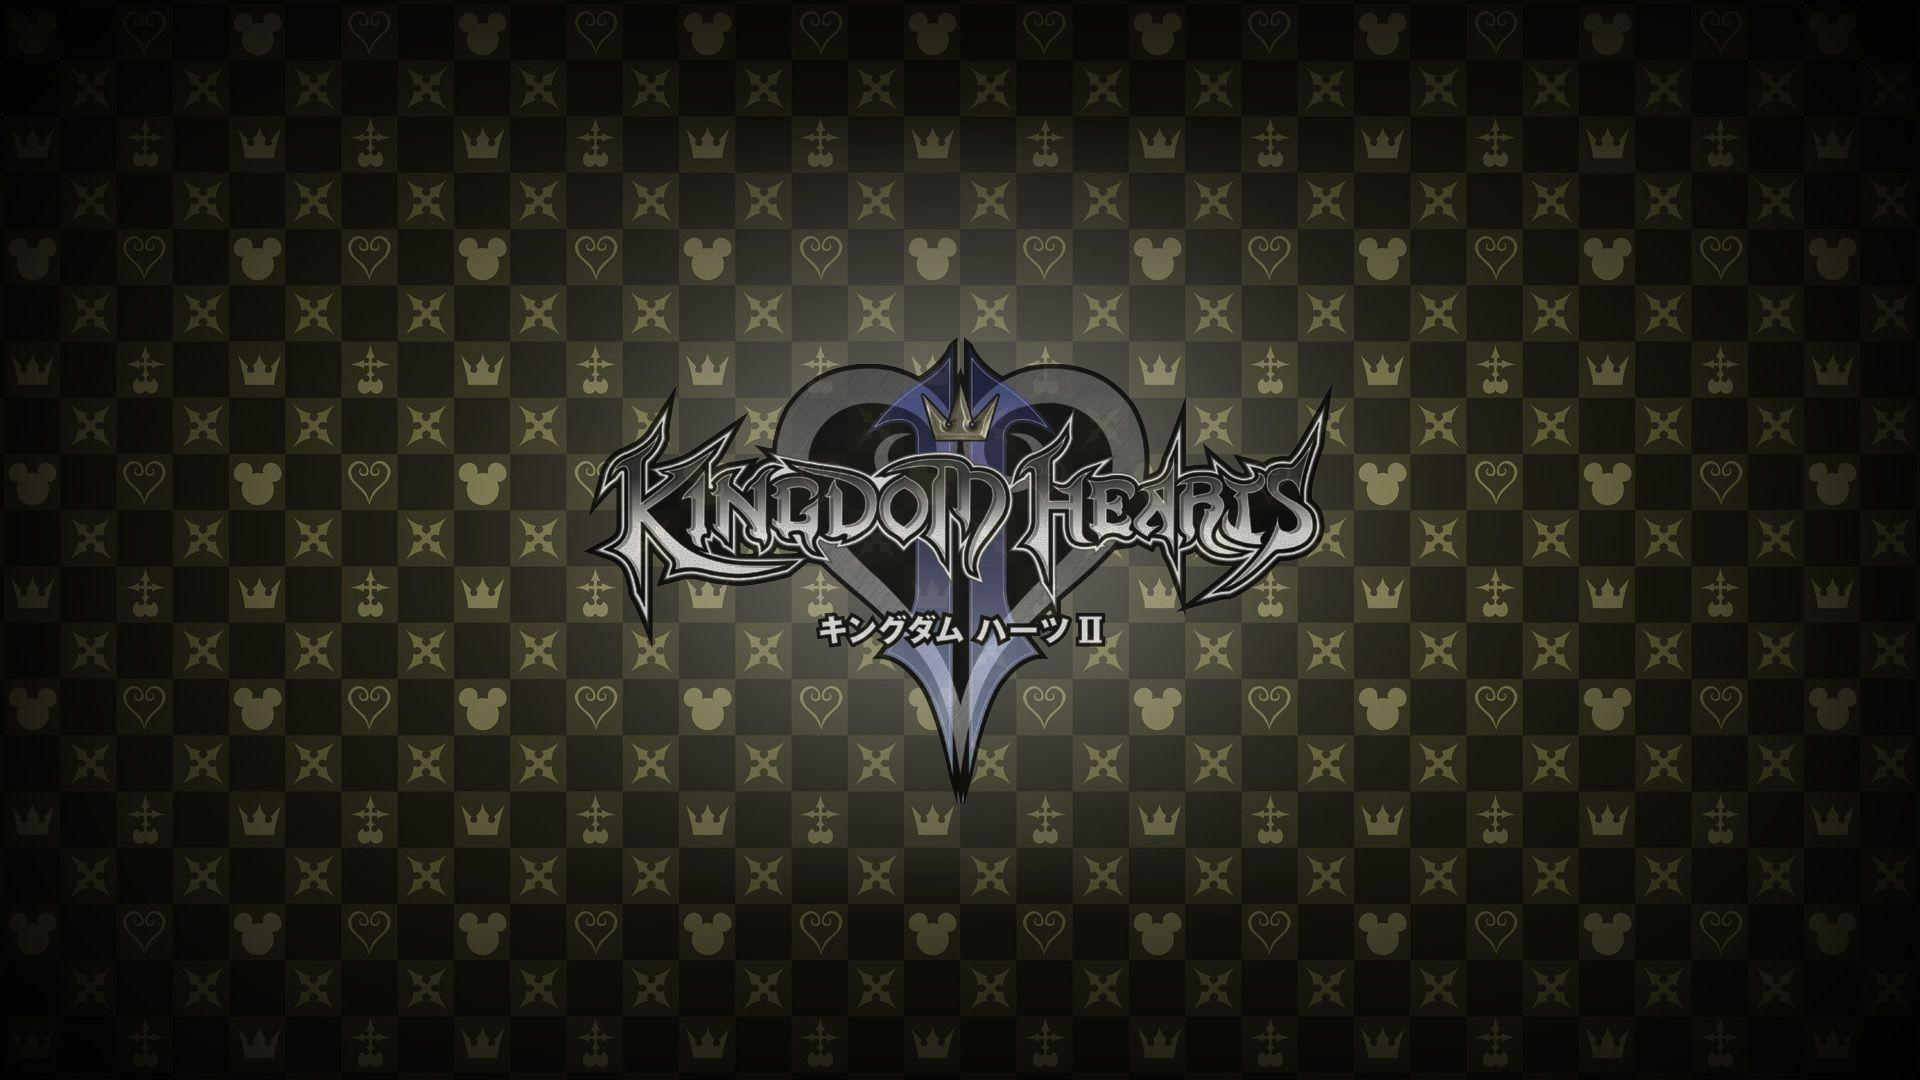 kingdom hearts wallpapers 7434 1920x1080 px ~ HDWallSource